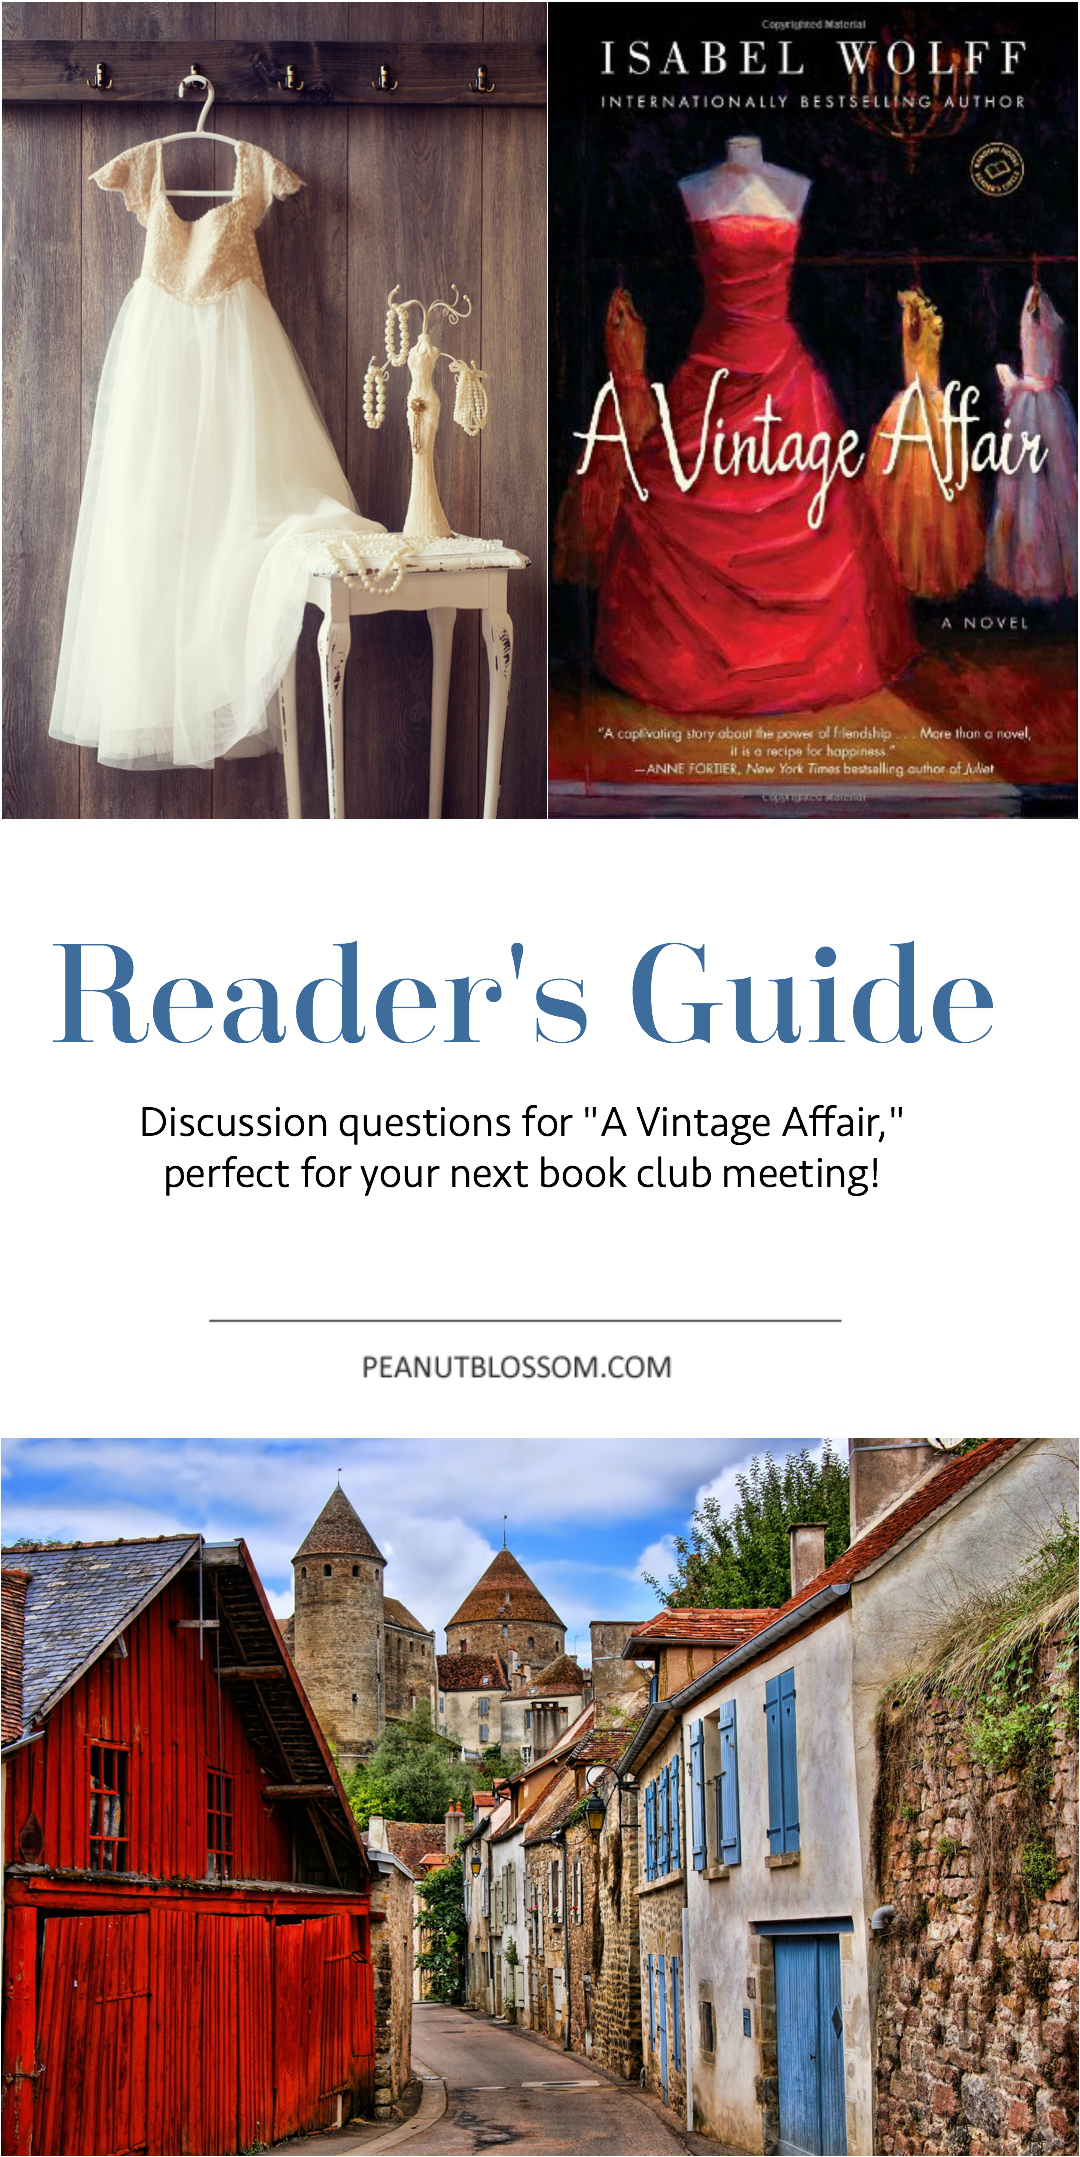 A Vintage Affair discussion guide